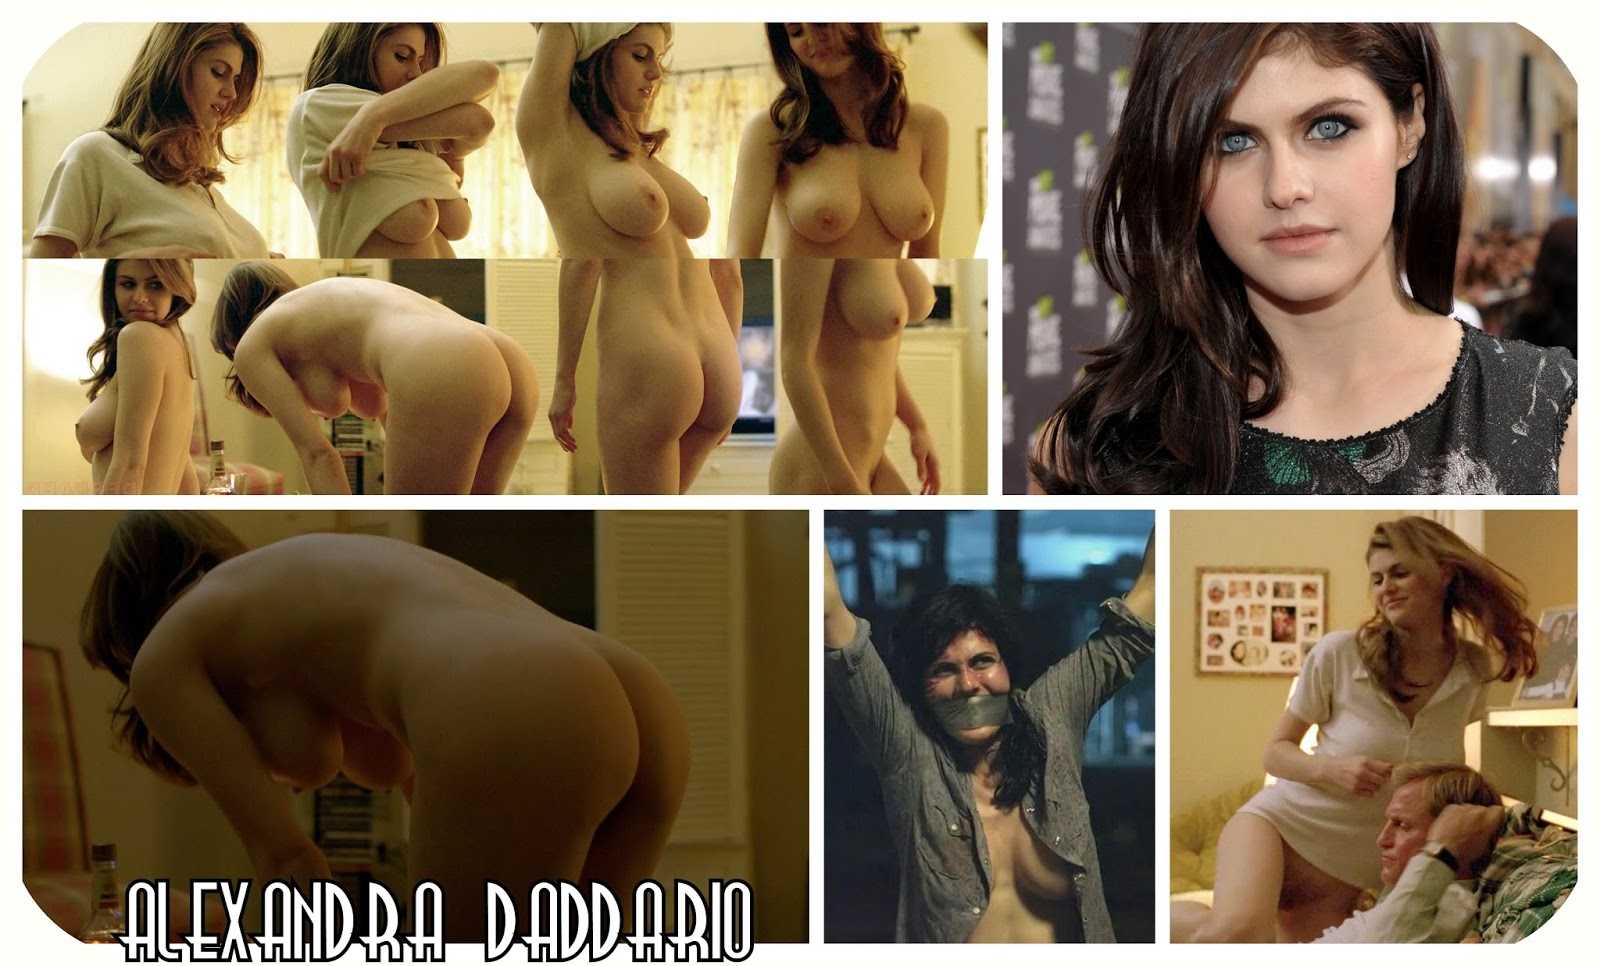 The sexiest female nude scenes in images